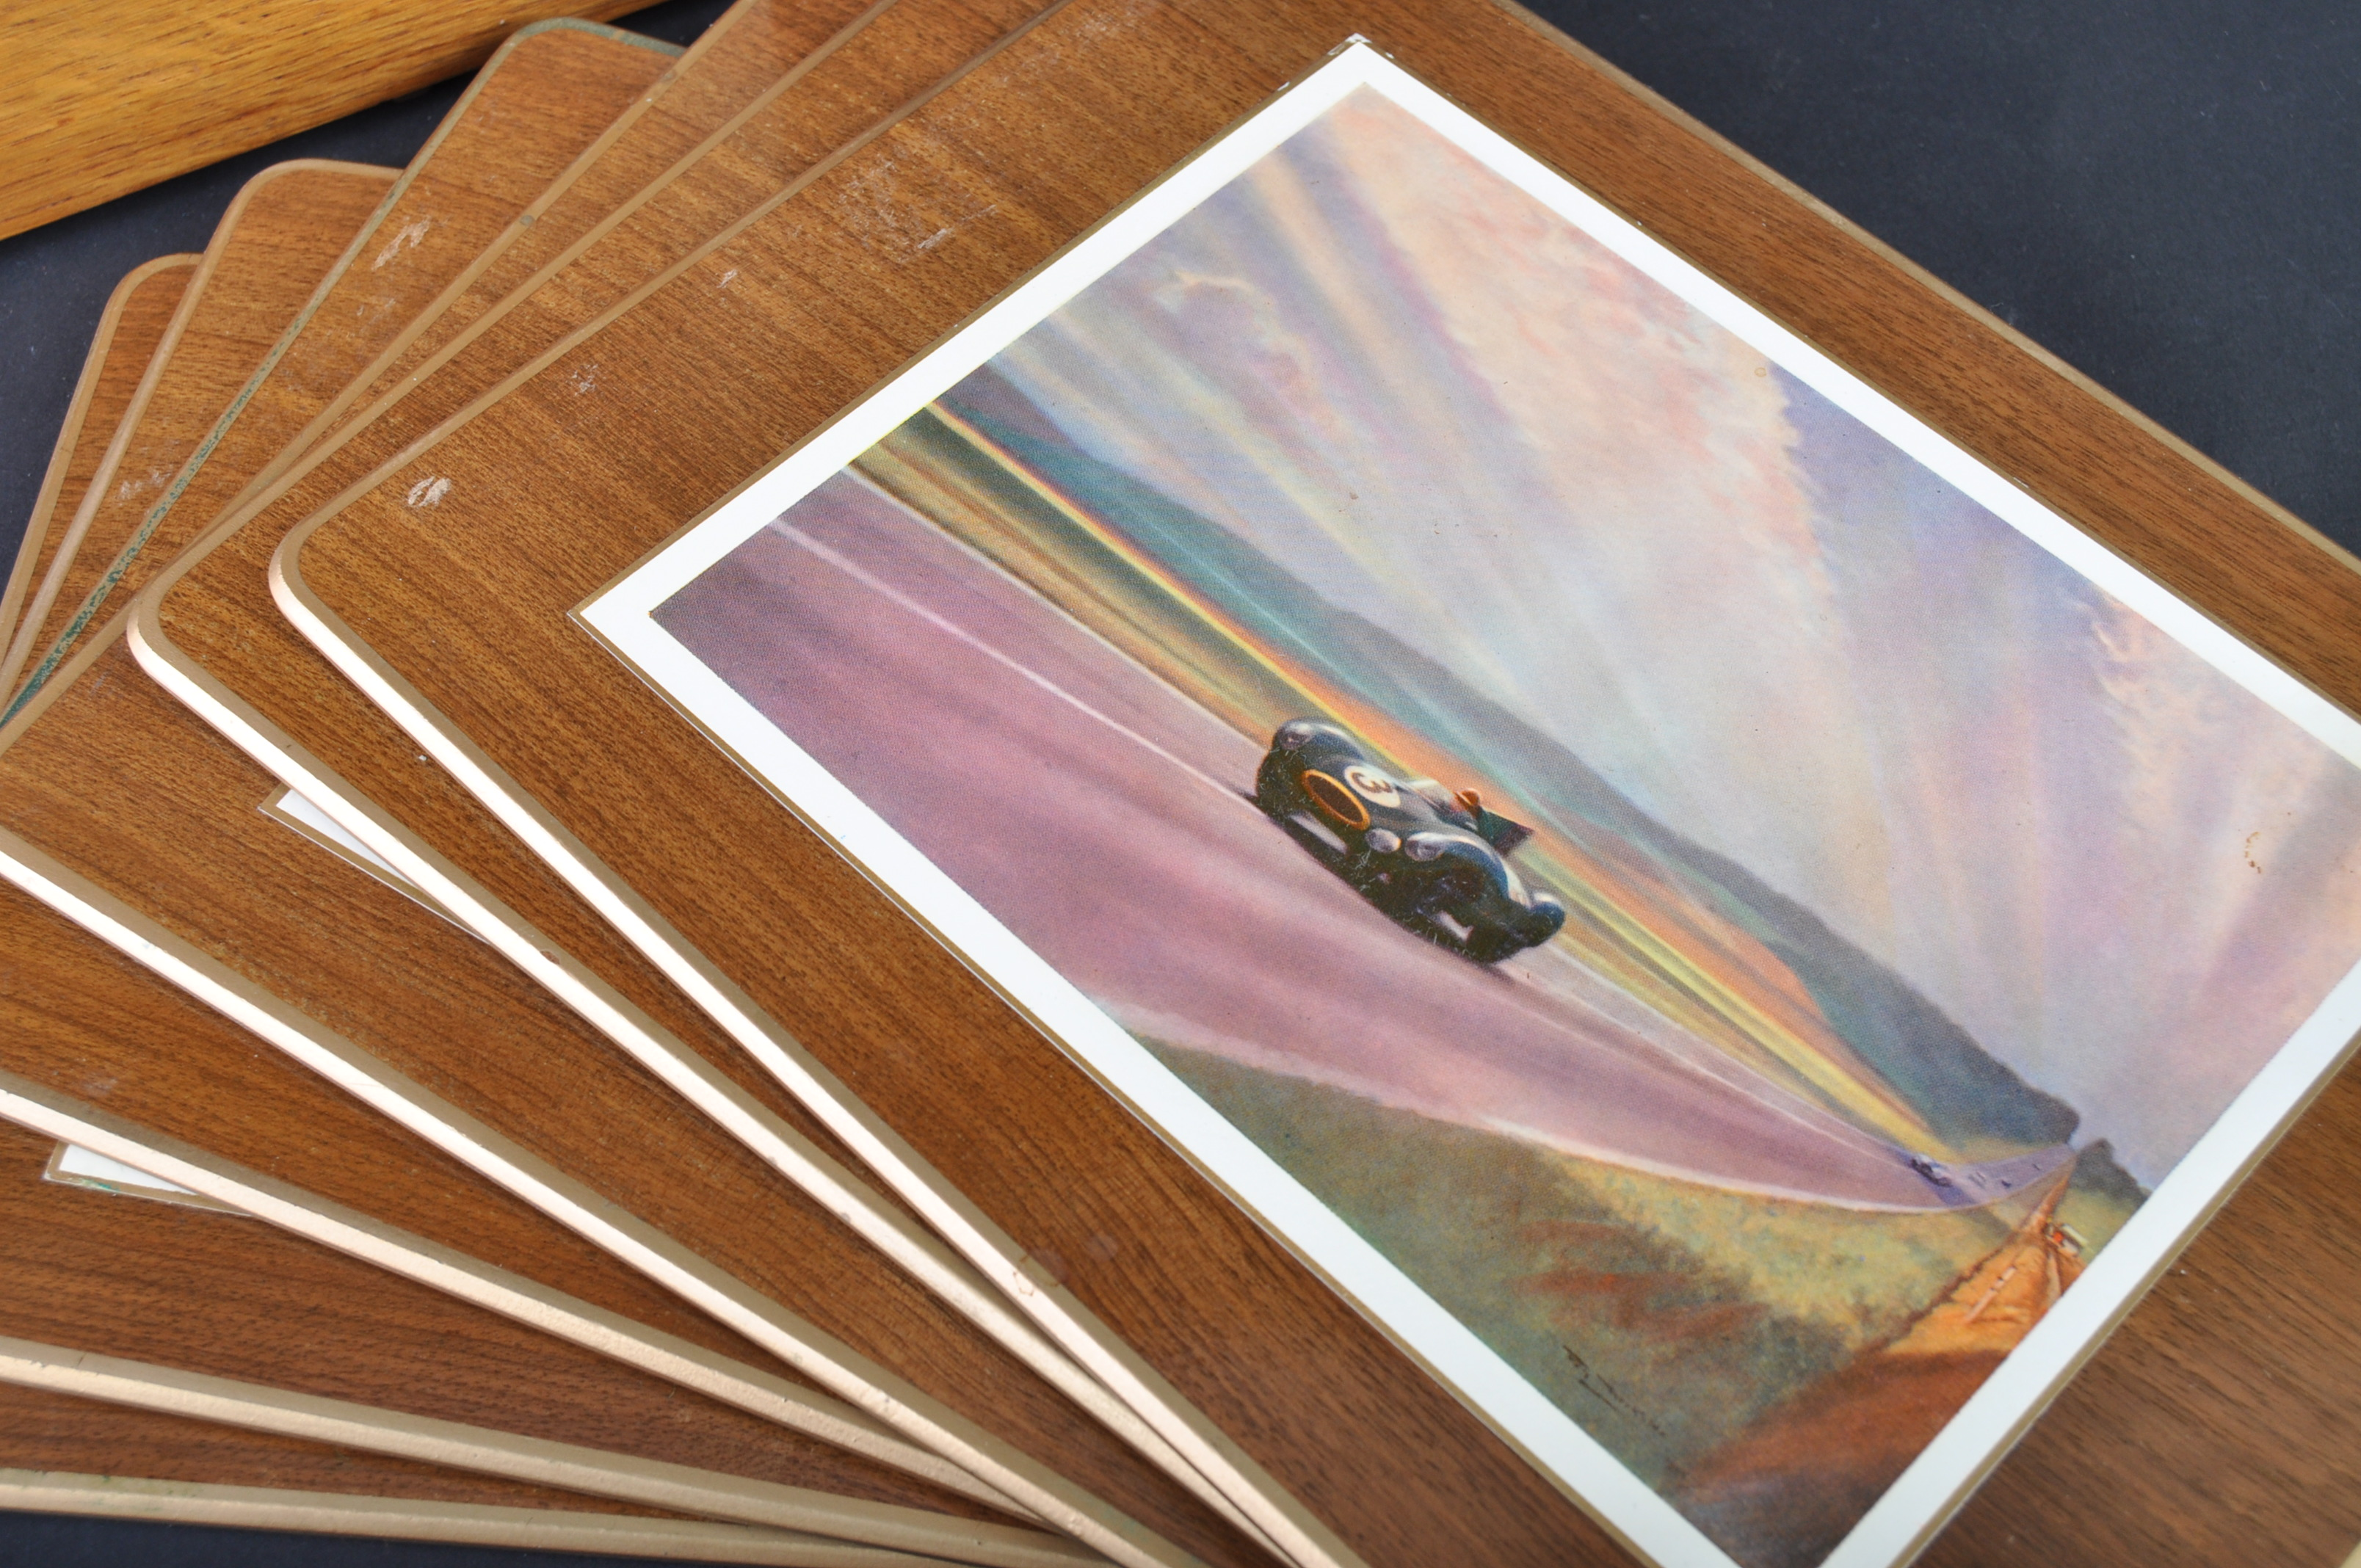 JAGUAR - RARE 1950S BOXED SET OF PLACE / TABLE MATS - Image 3 of 12